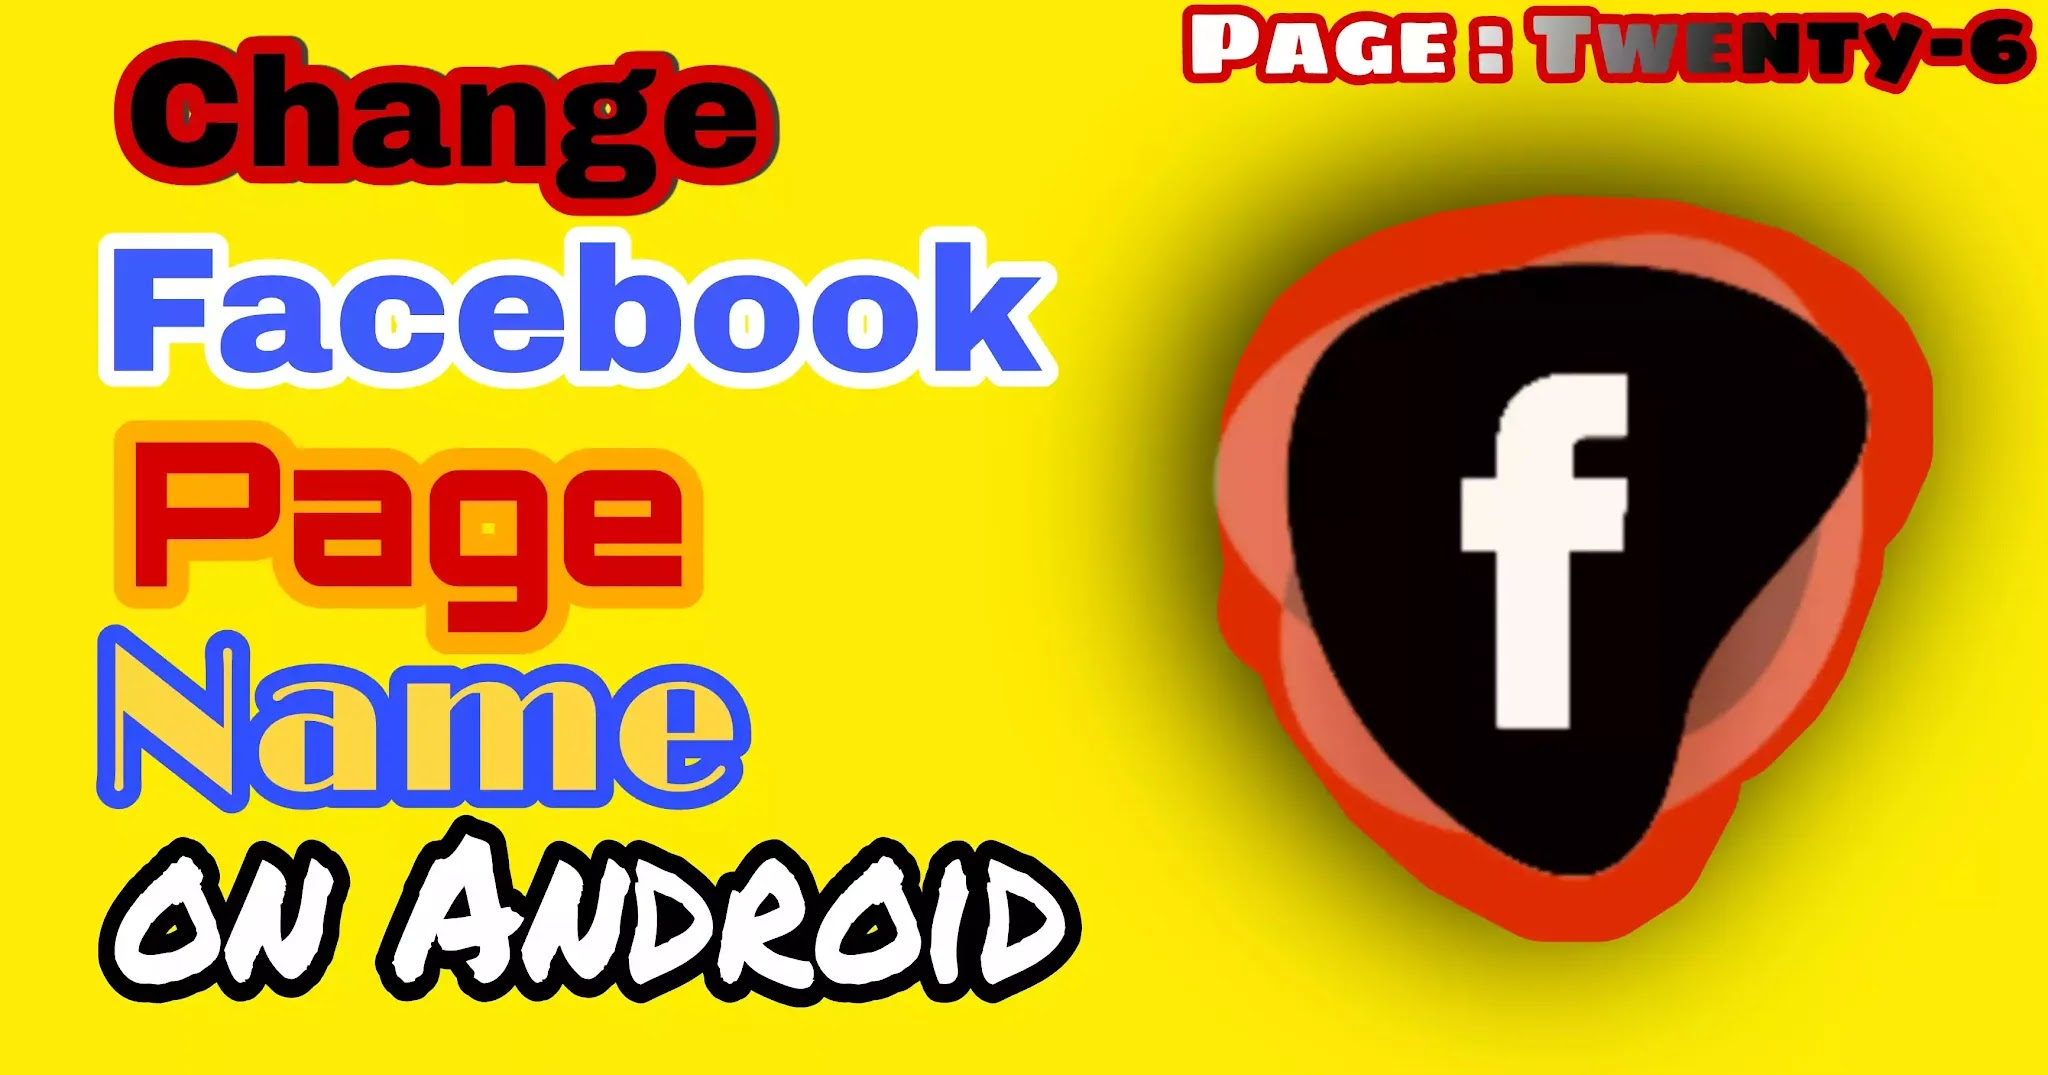 How to Change Facebook Page Name on Android Mobile